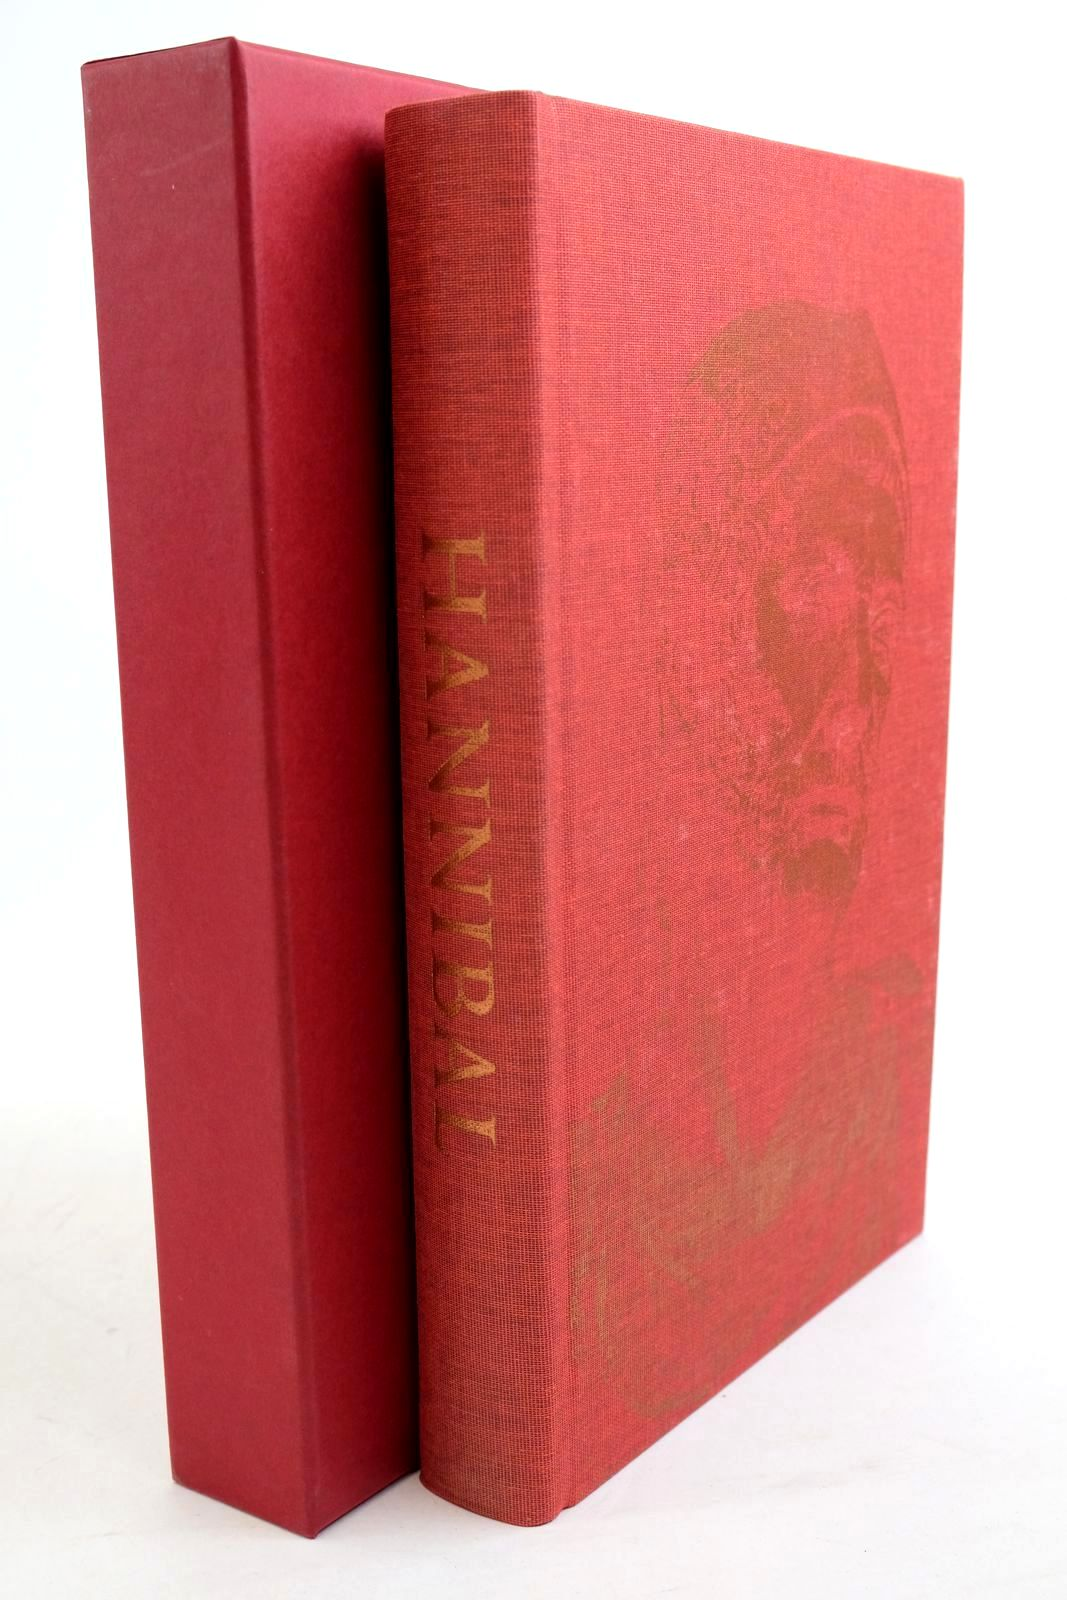 Photo of HANNIBAL written by Bradford, Ernle published by Folio Society (STOCK CODE: 1321355)  for sale by Stella & Rose's Books